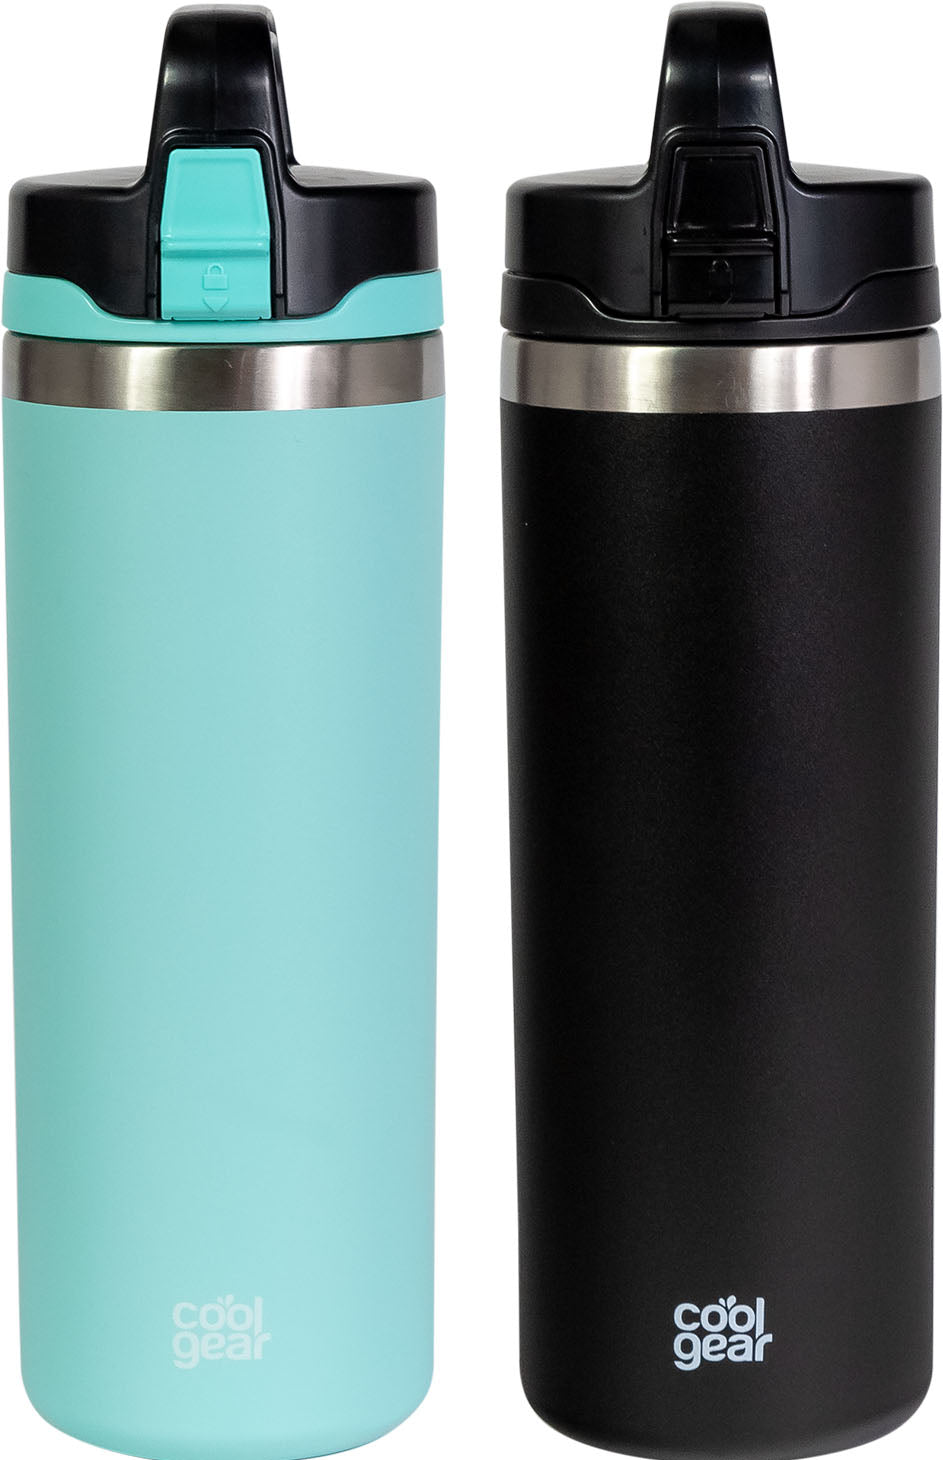 2 Pack COOL GEAR Niagara 25oz Stainless Steel Water Bottle | Locking lid